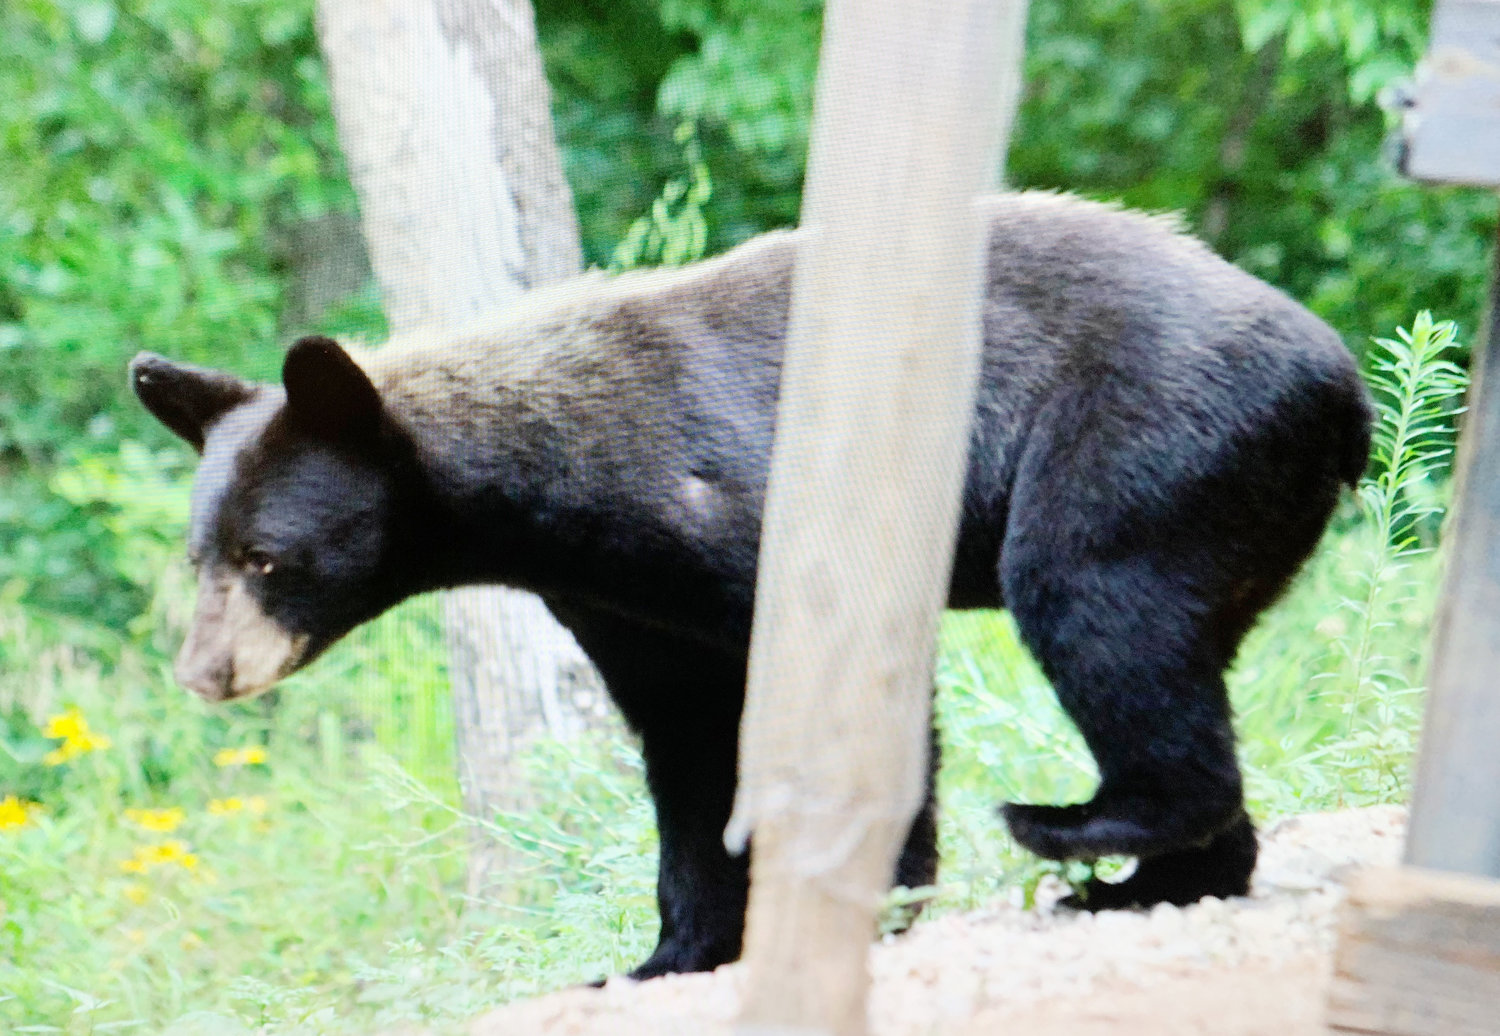 This young bear spent several days in the area on the west side of the Gasconade River. The Missouri Department of Conservation suggests not leaving food outside, which draws bears who have a very good sense of smell.